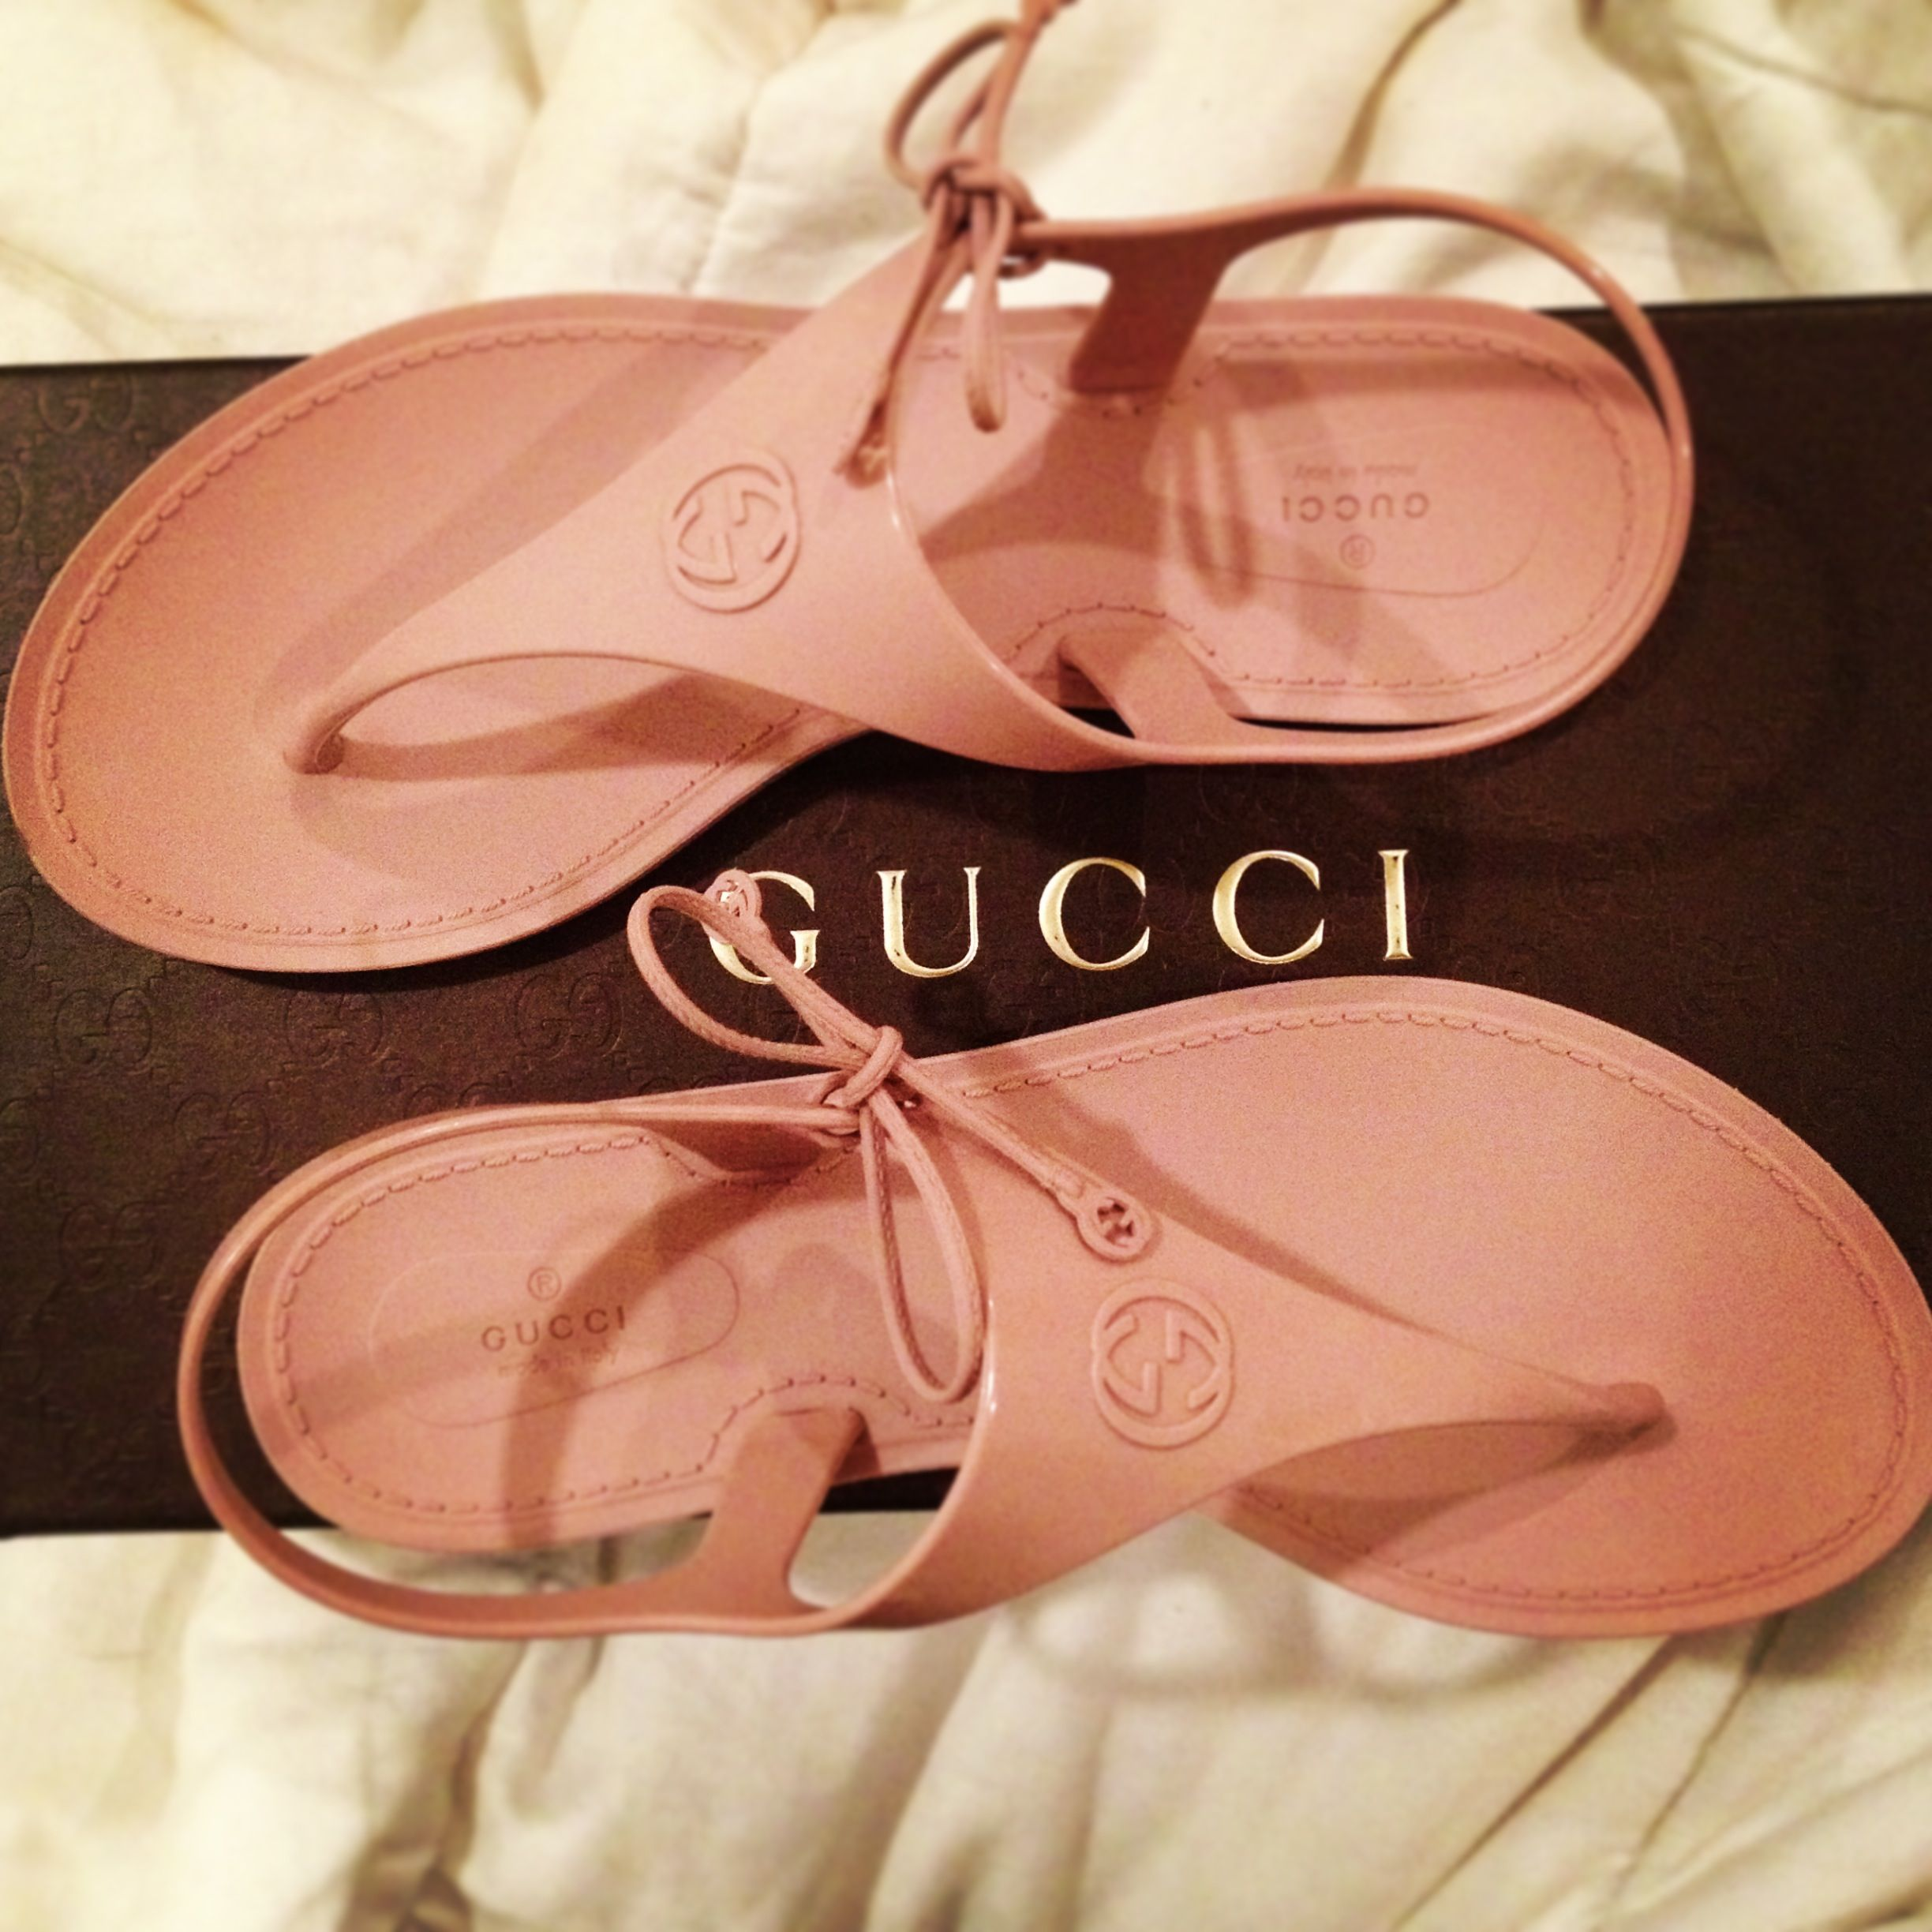 Women's jelly sandals size 10 - Gucci Jelly Sandals Jelly Sandals Are Essentials For The Summer